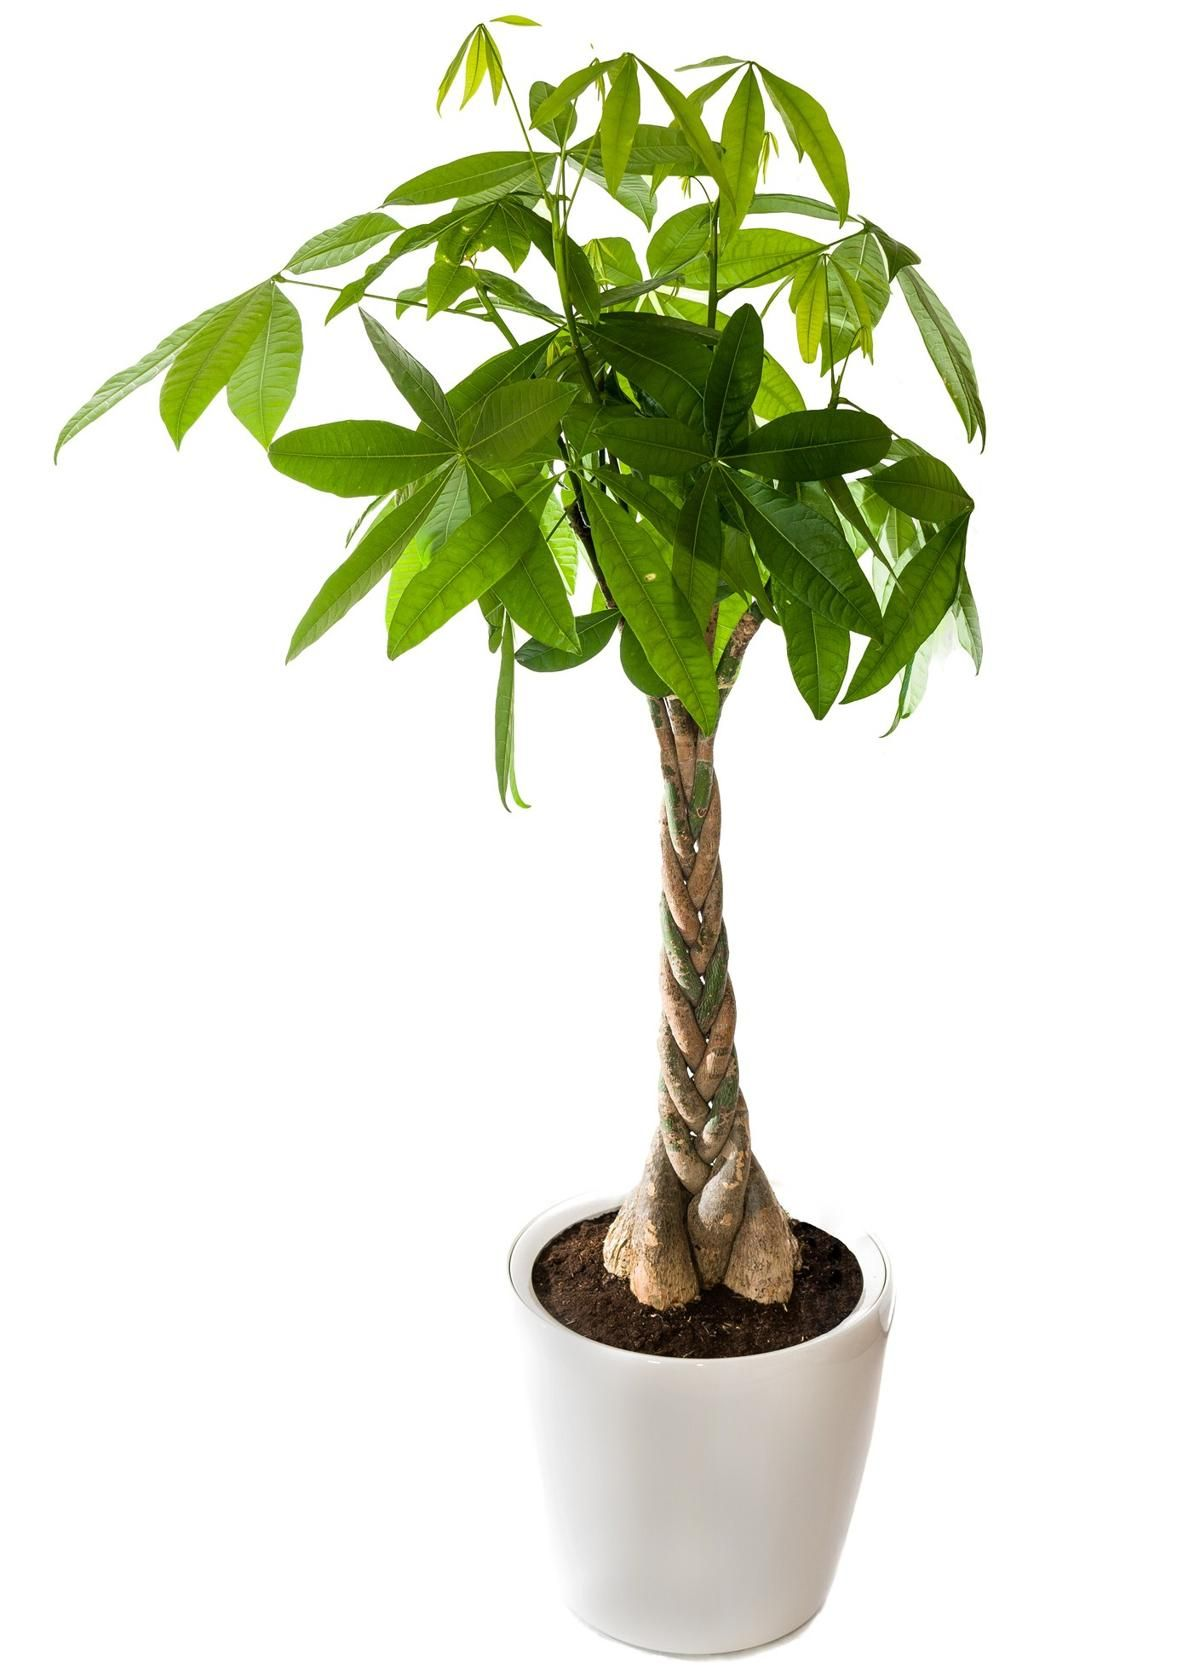 We Tell You How To Braid A Money Tree In 6 Easy Steps Gardenerdy Money Tree Plant Plant Care Houseplant Trees To Plant